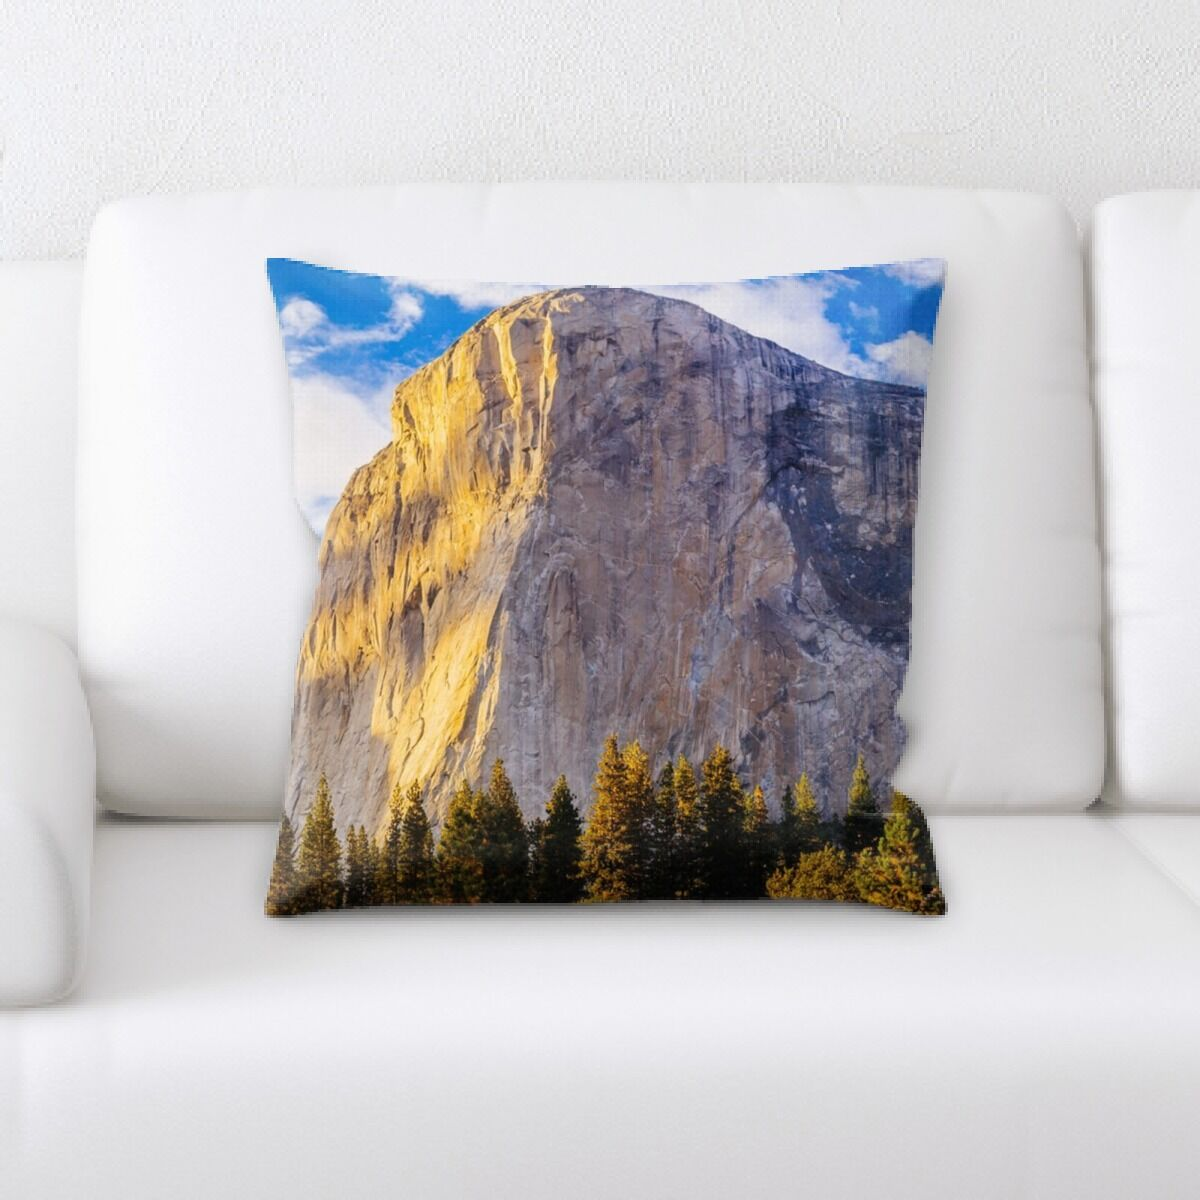 Oneridge Mountain and Cliffs (141) Throw Pillow